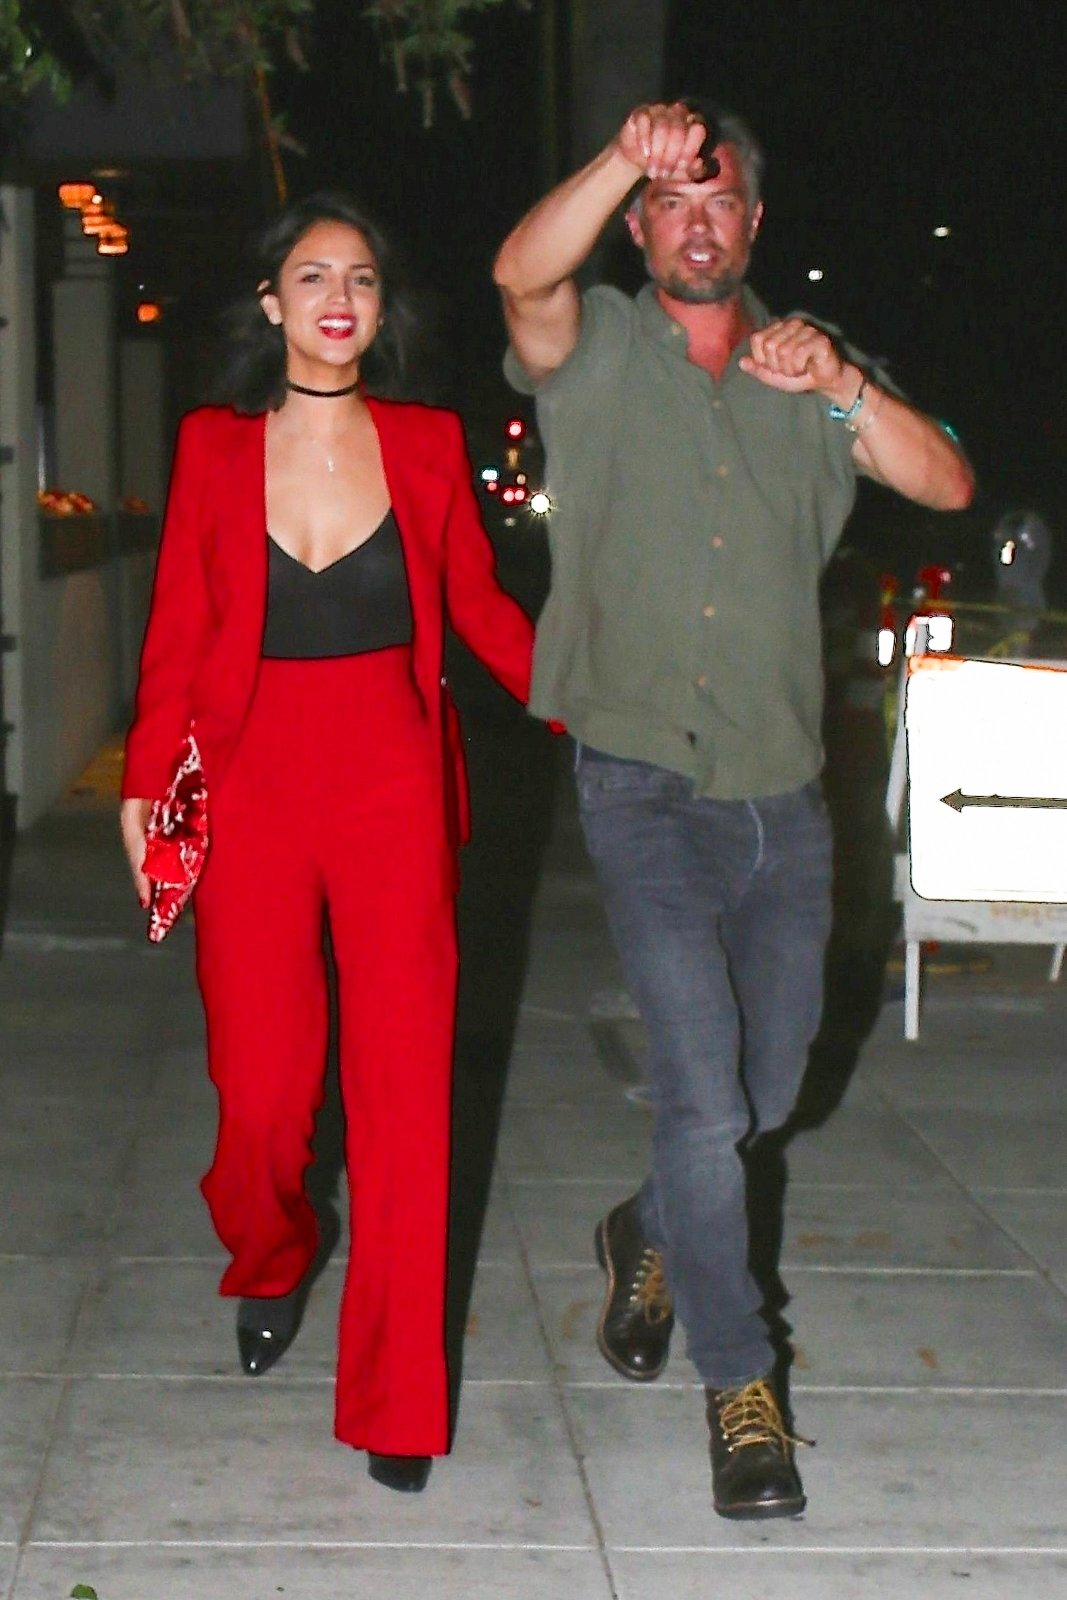 Beverly Hills, CA  - *PREMIUM-EXCLUSIVE*  - Rumored couple, Josh Duhamel and Eiza Gonzalez, confirming their secretive romance. The pair are all smiles as they exit a Beverly Hills restaurant. Eiza isn't hard to miss in a low cut red outfit while Josh keeps it casual. The pair seems loved up but as the cameras are noticed they try to distance themselves. Shot 06/08/18.  Pictured: Eiza Gonzalez, Josh Duhamel  BACKGRID USA 9 JUNE 2018, Image: 374321563, License: Rights-managed, Restrictions: , Model Release: no, Credit line: Profimedia, AKM-GSI